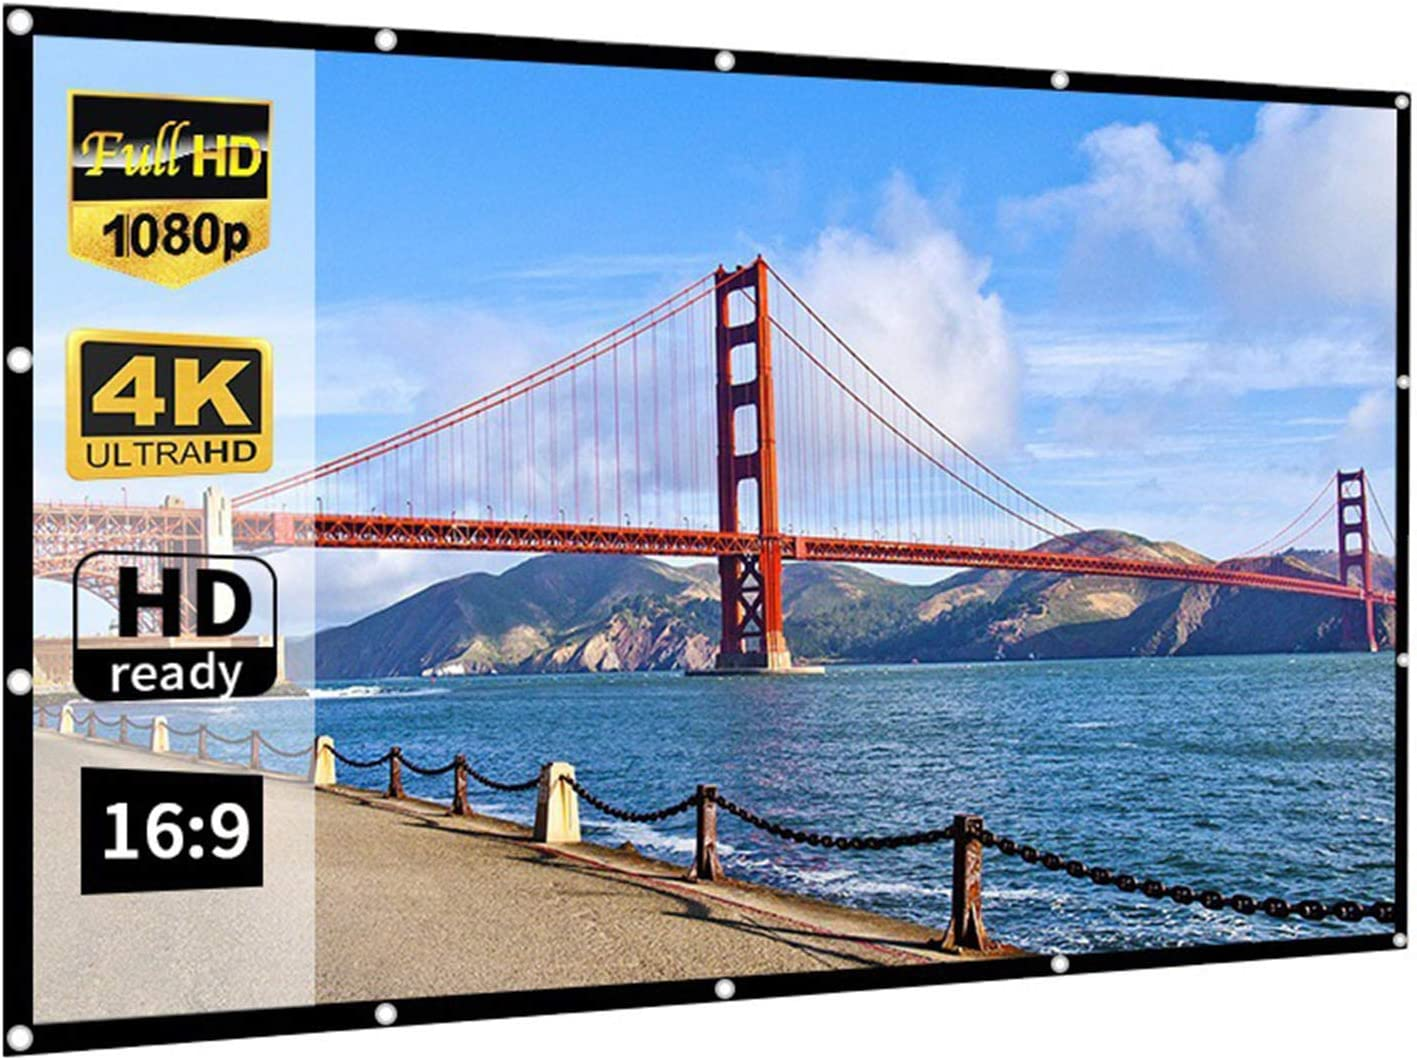 NNBD 16:9 Portable Projection Screen HD 4K Foldable Movies Screen for Home Theater Cinema Indoor Outdoor Front and Rear Projection Easy to Install